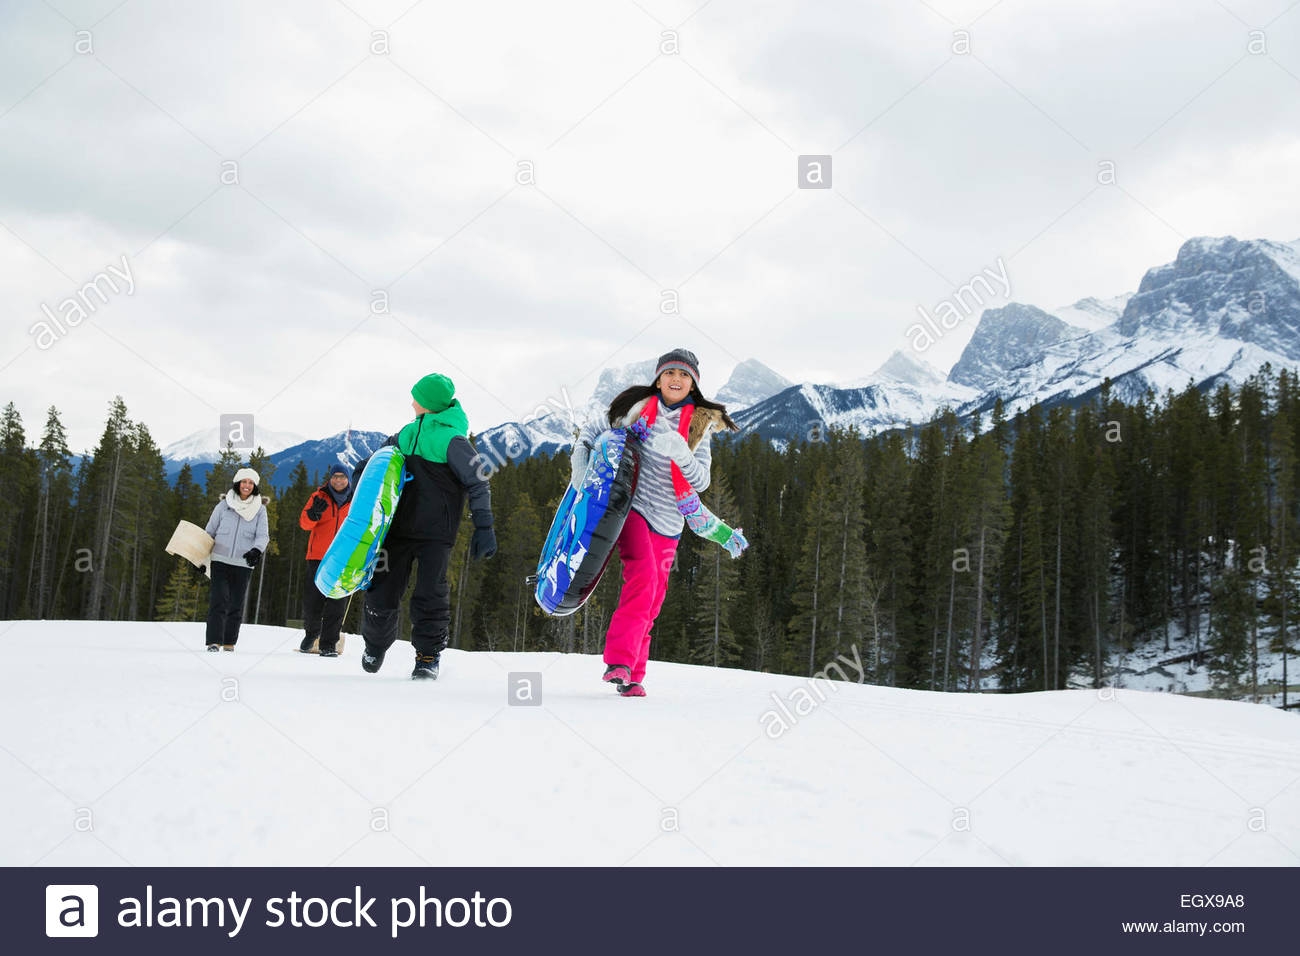 Family with inner tubes in snowy field - Stock Image